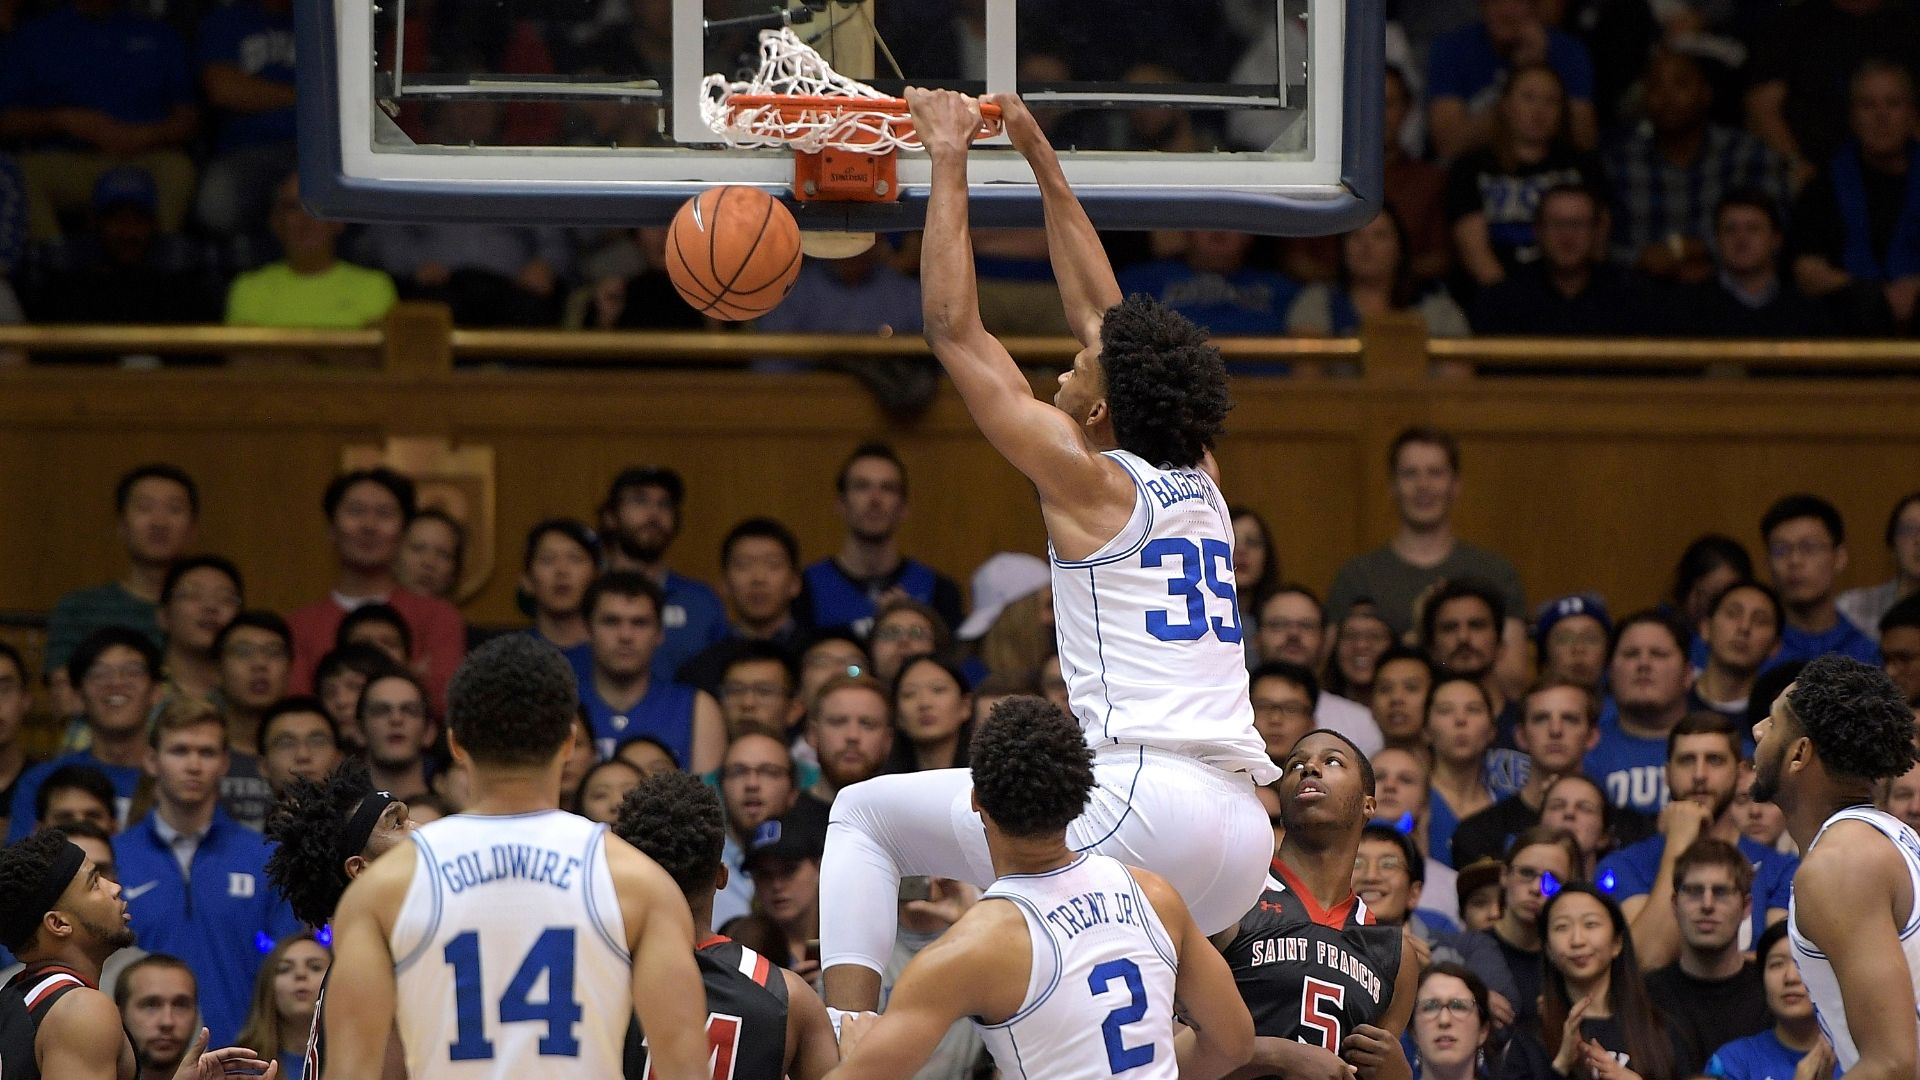 Bagley leads Duke en route to win over St. Francis